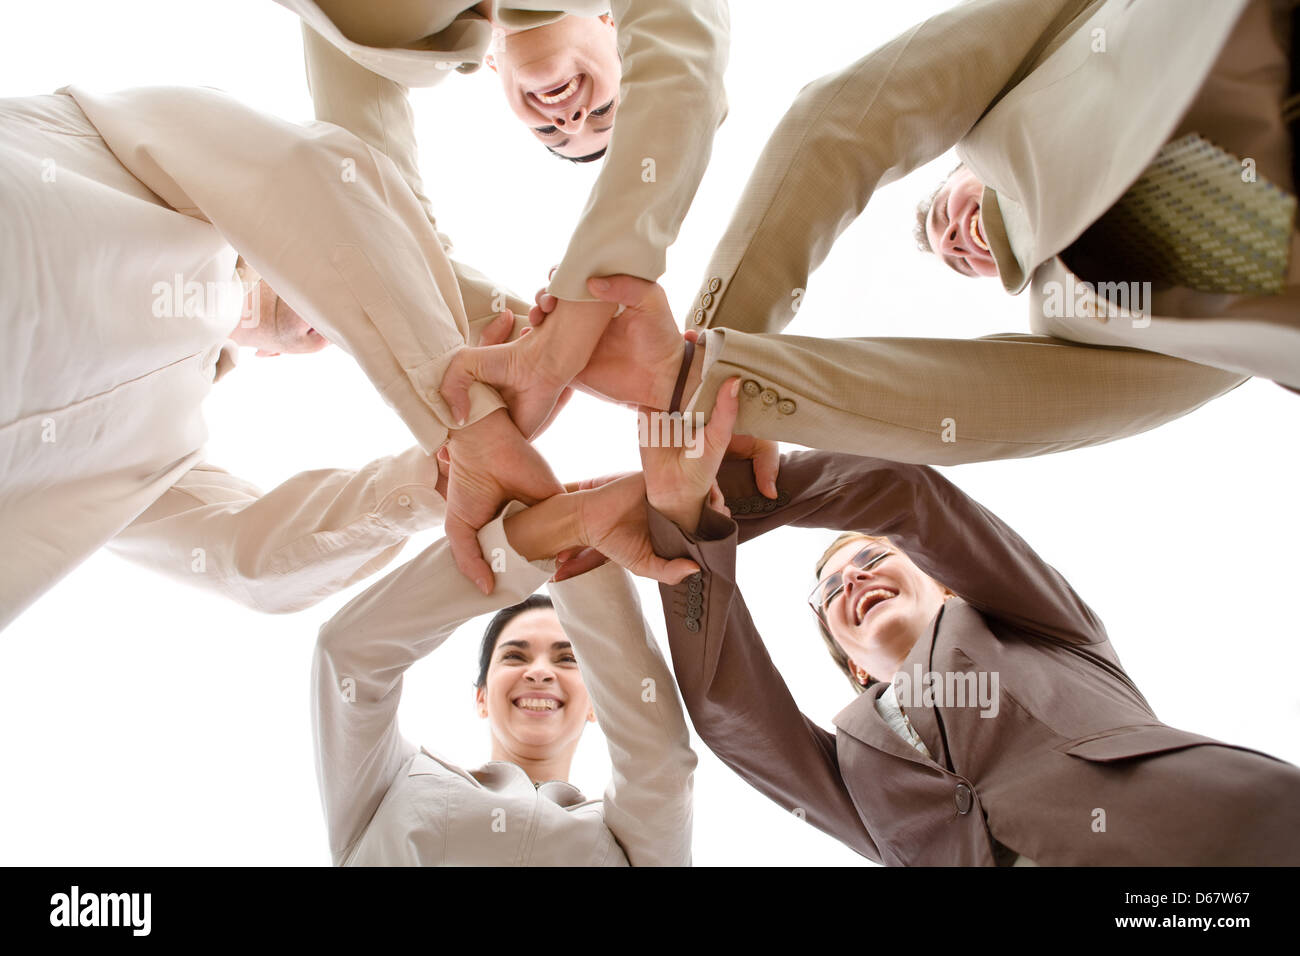 teamwork,team spirit,cooperation - Stock Image